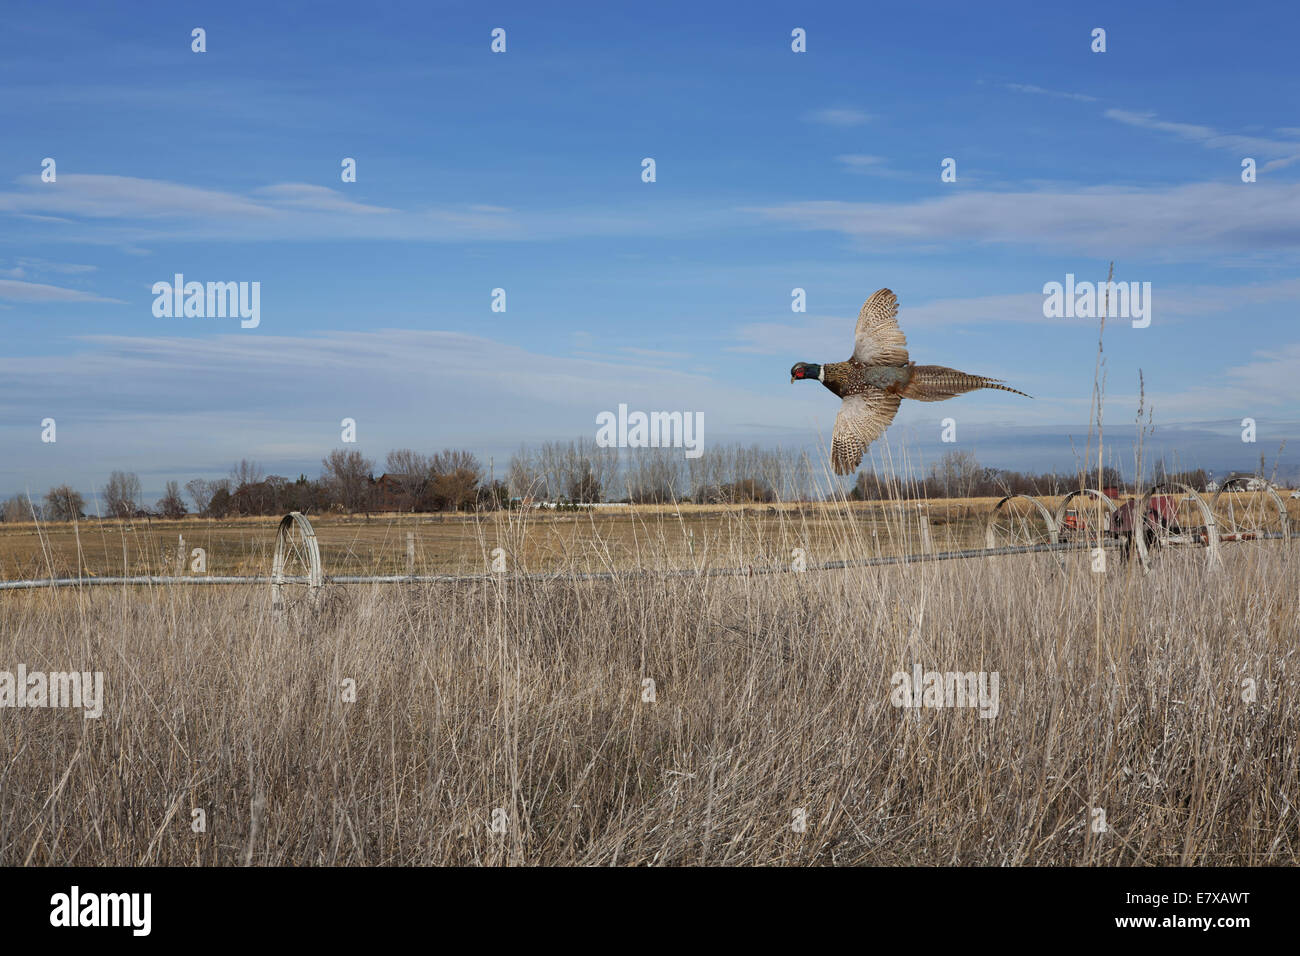 Ring-necked pheasant flying over field in fall - Stock Image